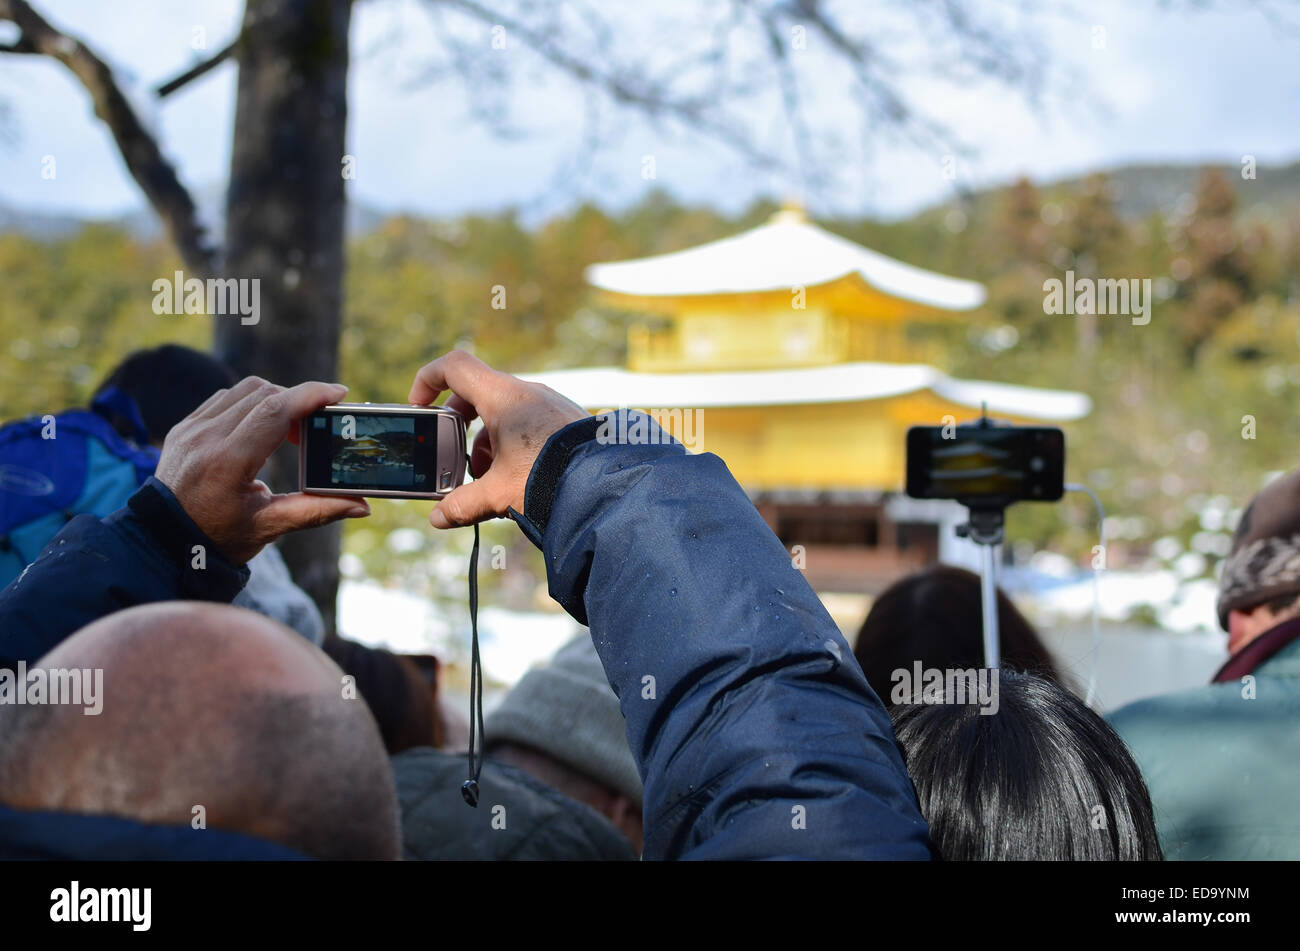 Tourists at Kinkakuji (Golden Temple / Golden Pavilion) in Kyoto, Japan. - Stock Image